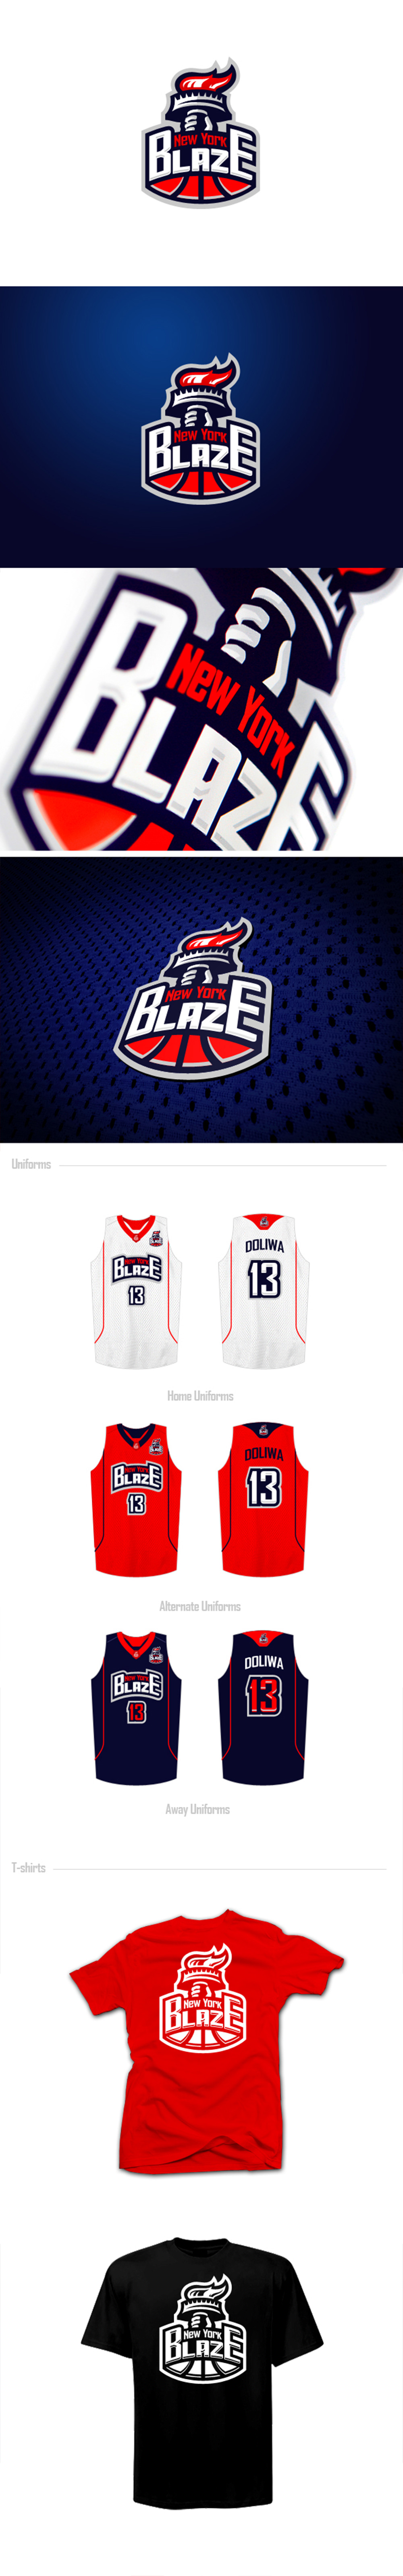 Basketball Team Logo: New York Blaze by Lunatic